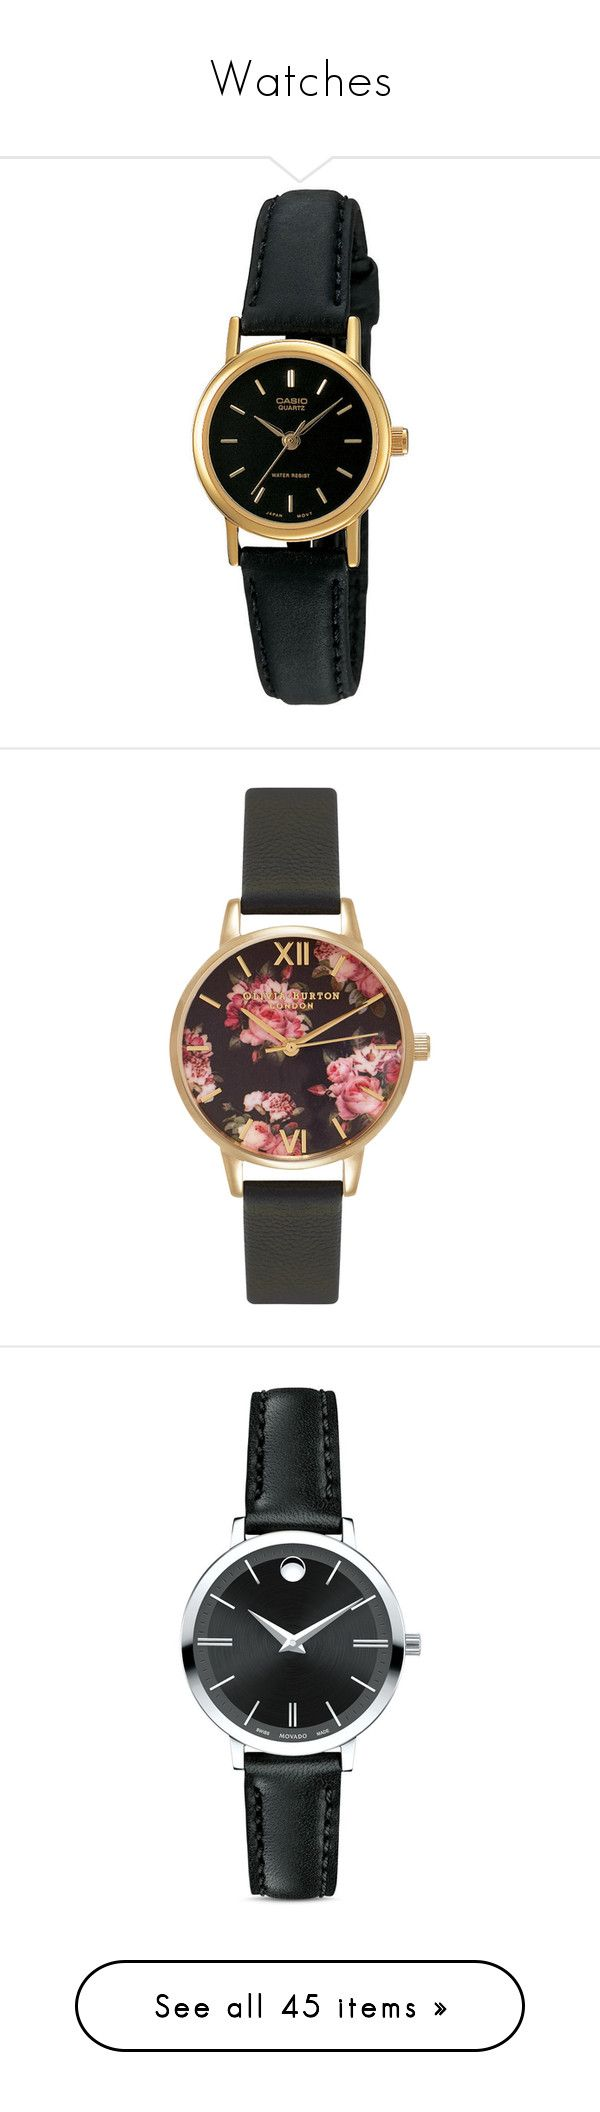 """""""Watches"""" by smilxngstars on Polyvore featuring jewelry, watches, black, leather watches, womens watches, analog watches, casio wrist watch, casio, water resistant watches und accessories"""